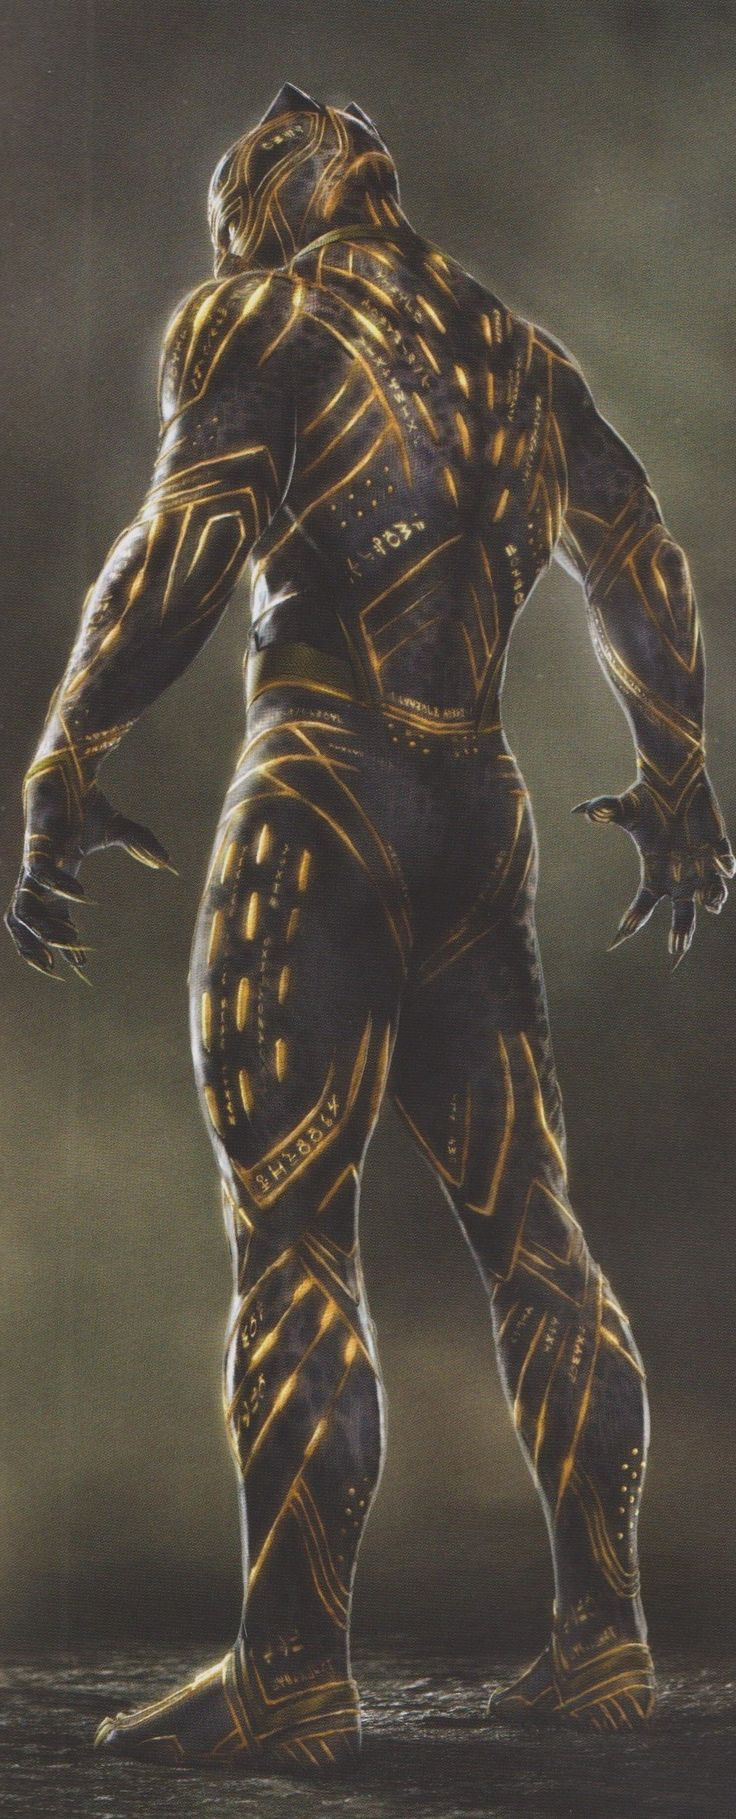 BLACK PANTHER: Jaw Dropping New Concept Art Reveals Alternate Designs For Killmonger's Panther Suit